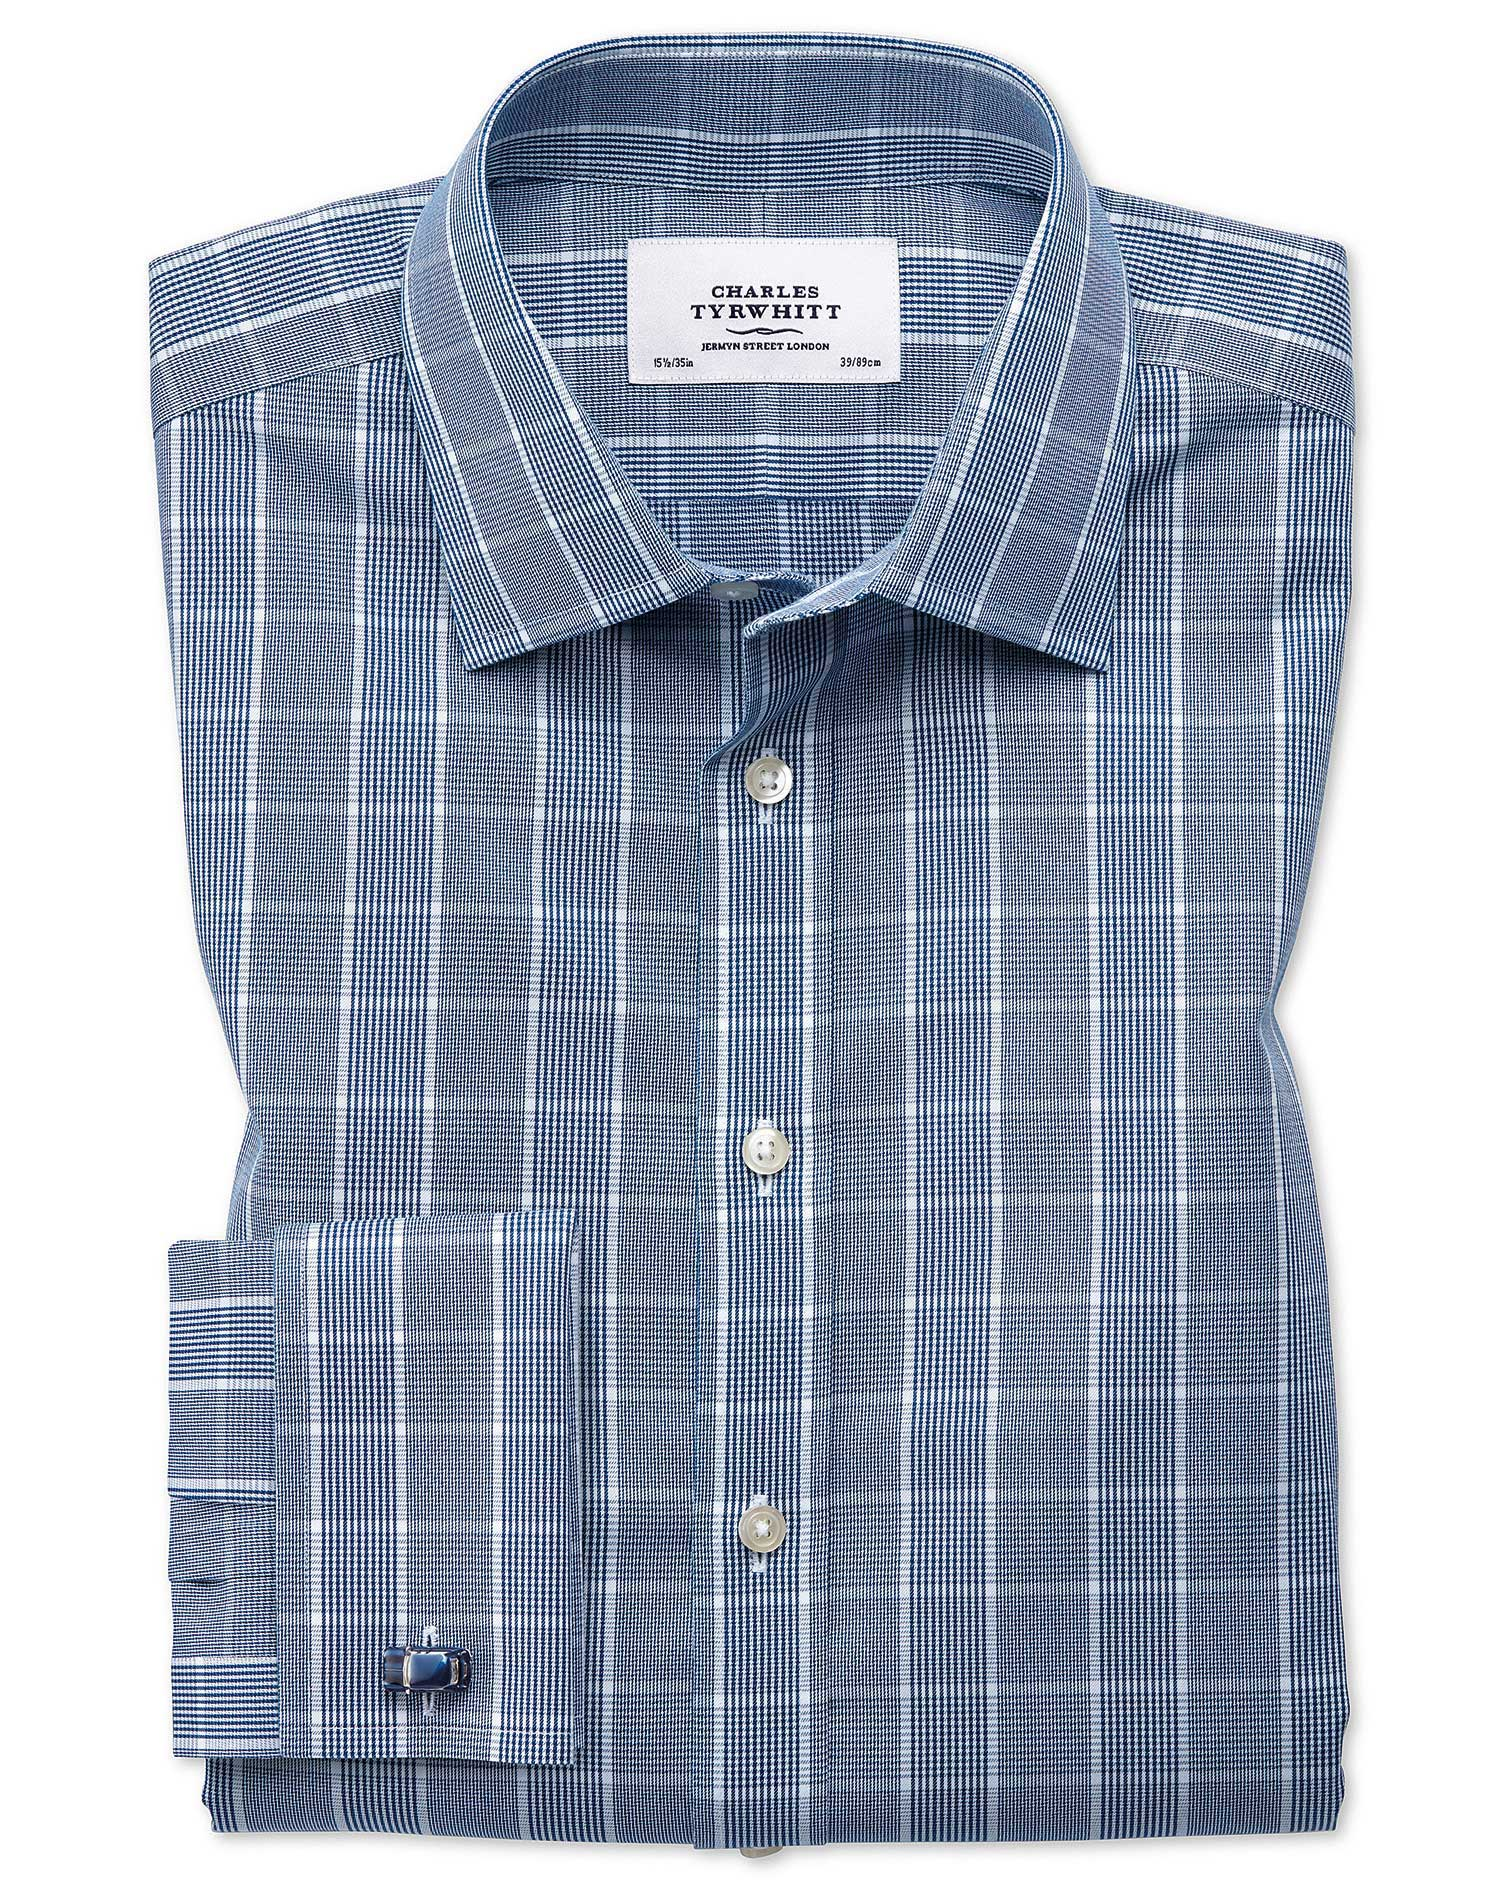 Slim Fit Non-Iron Prince Of Wales Navy Blue and White Cotton Formal Shirt Double Cuff Size 16/36 by